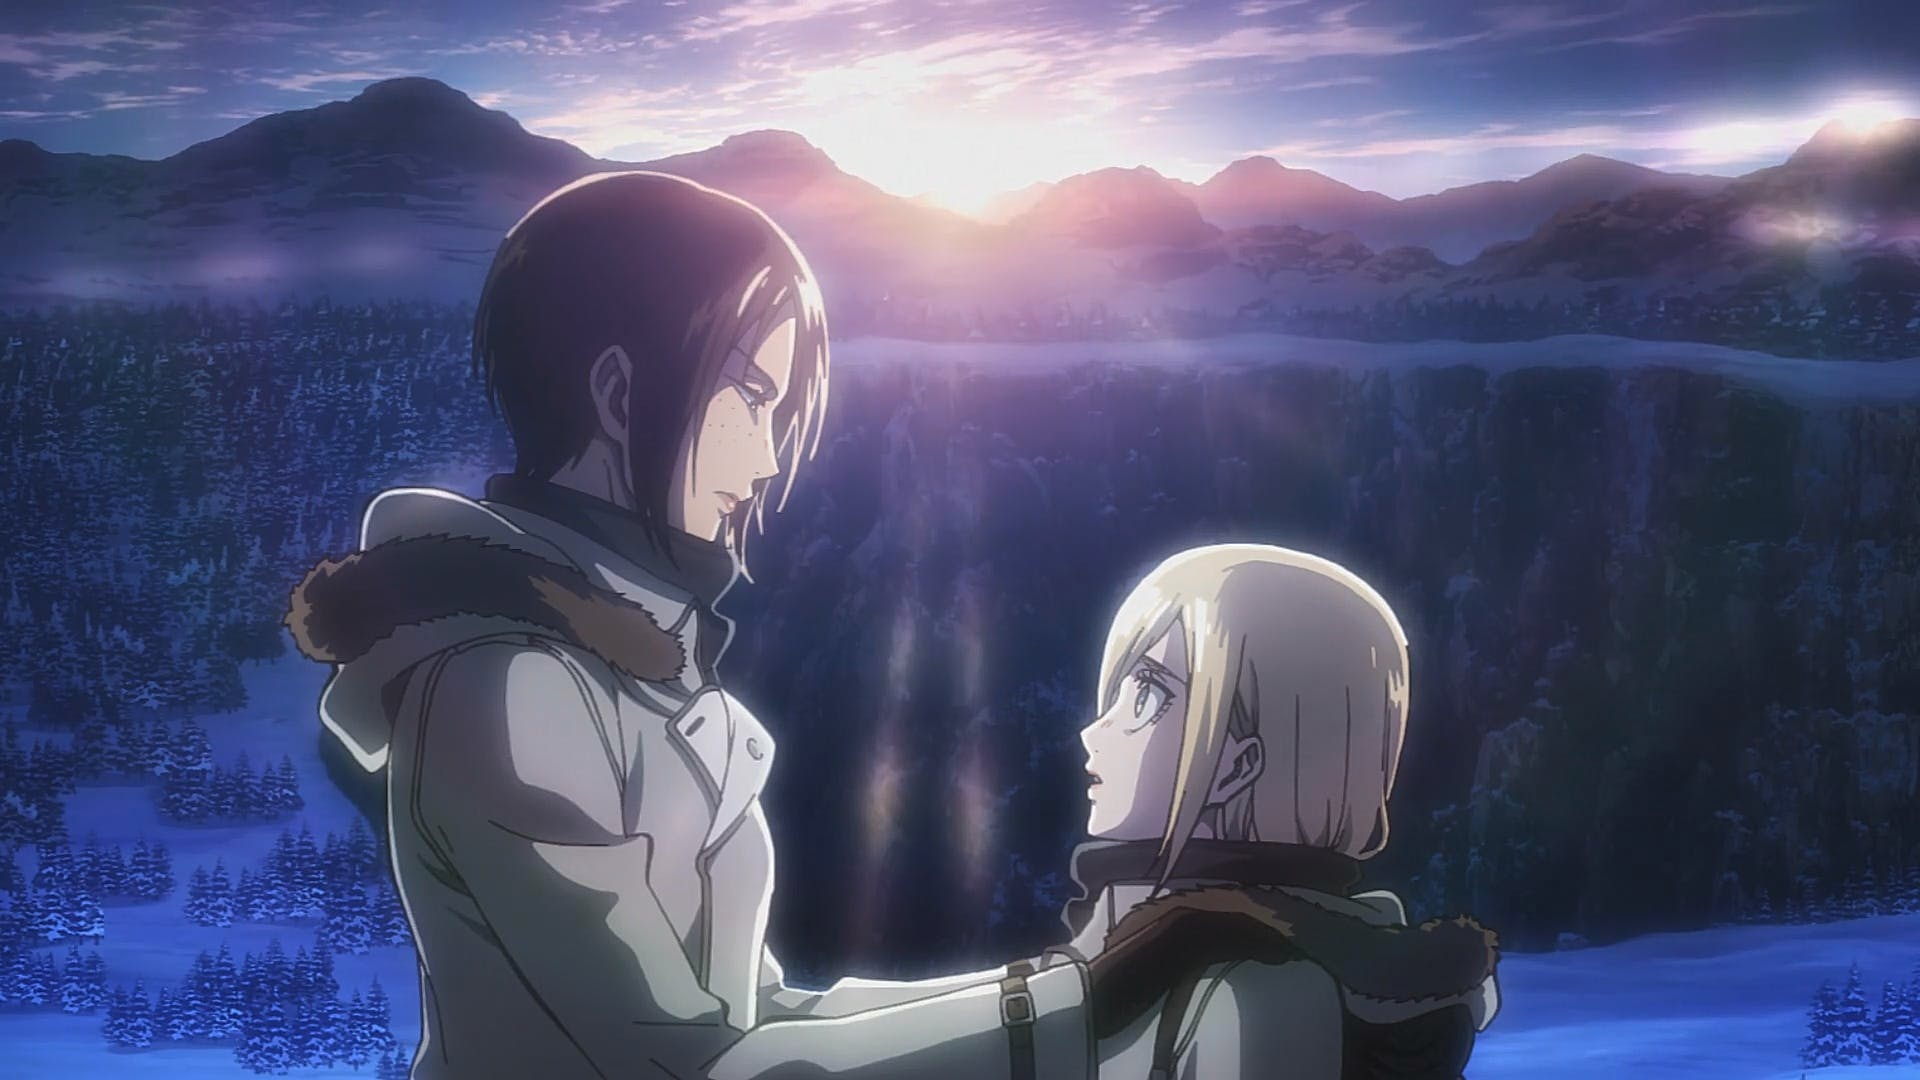 Attack on Titan Season 4 Episode 12 Release Date and Time